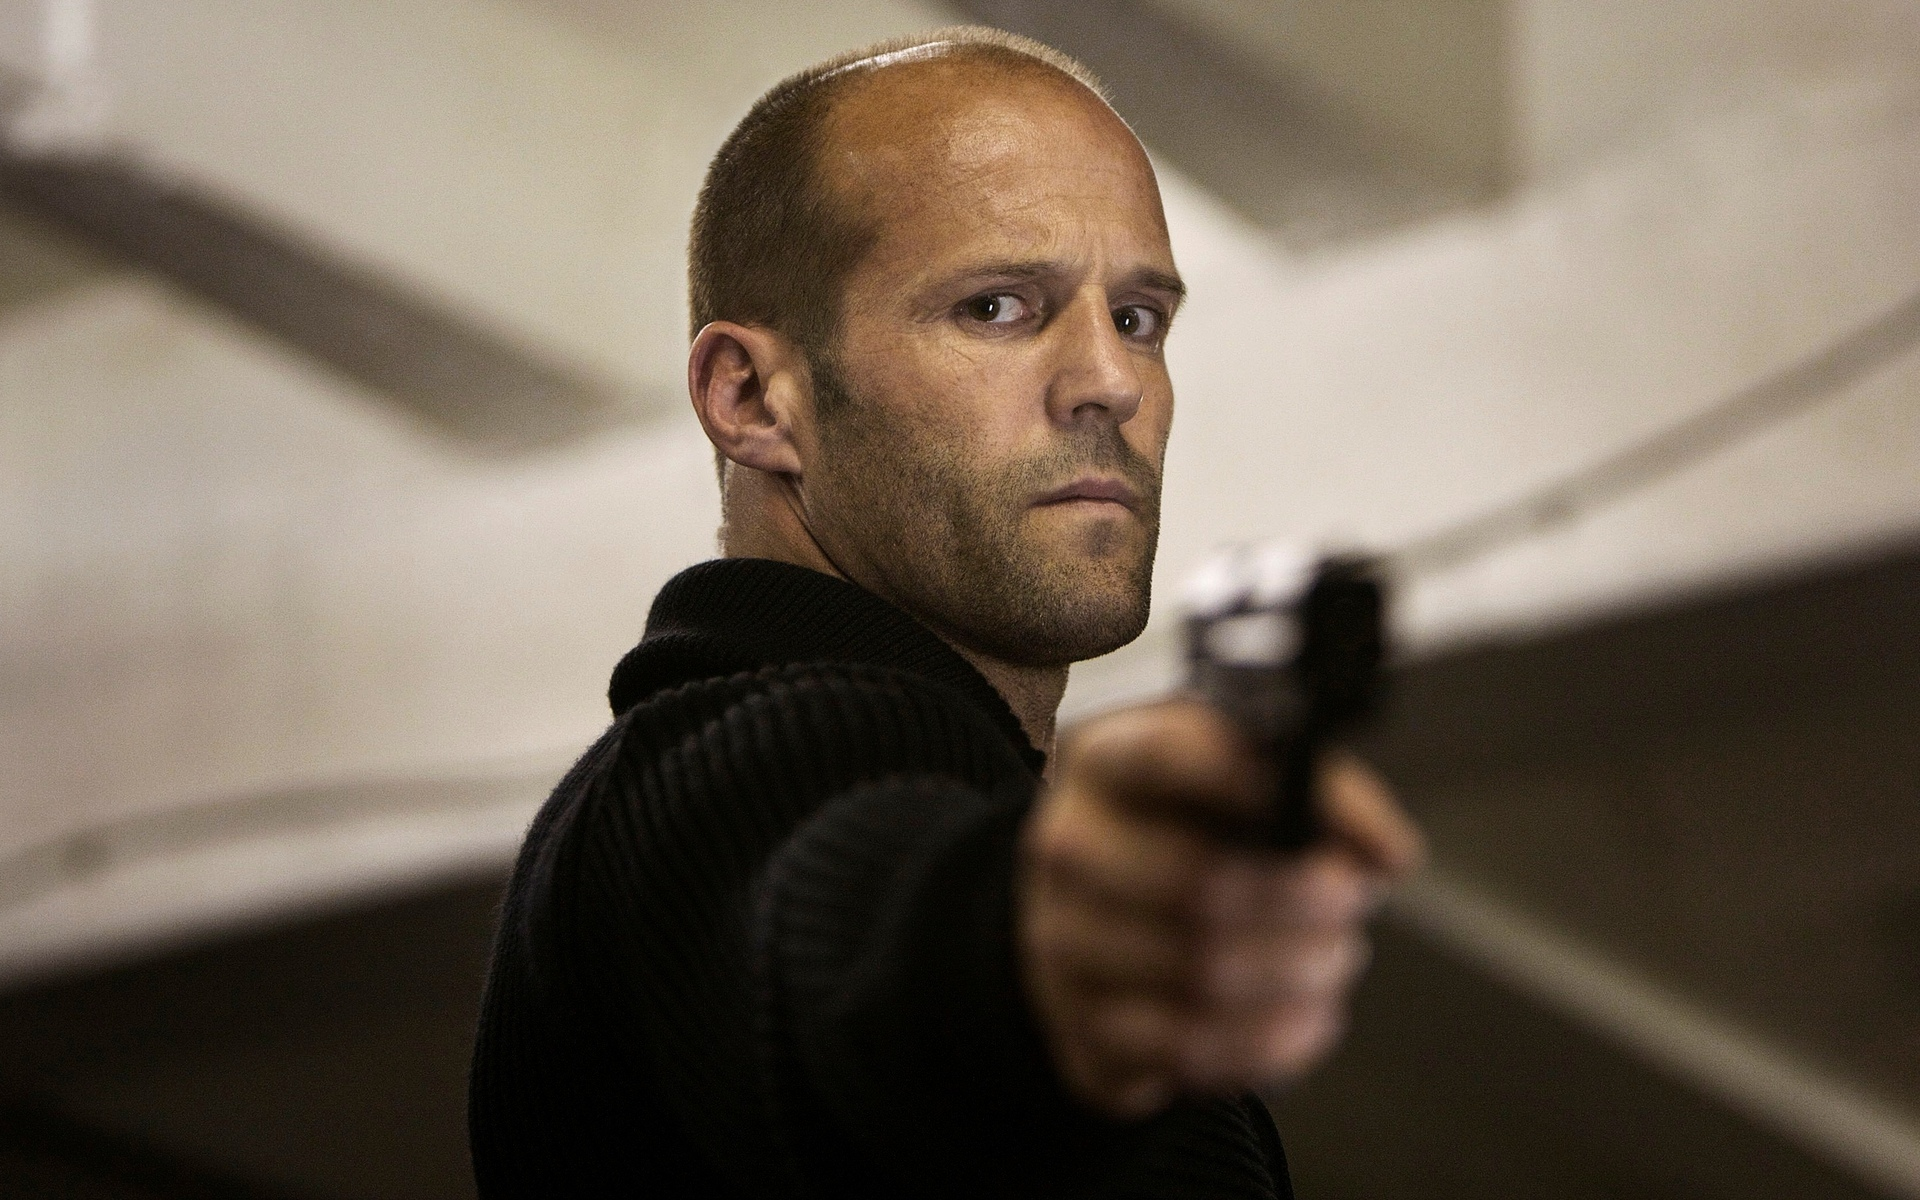 Tough guy Jason Statham putty in the hands of Melissa McCarthy